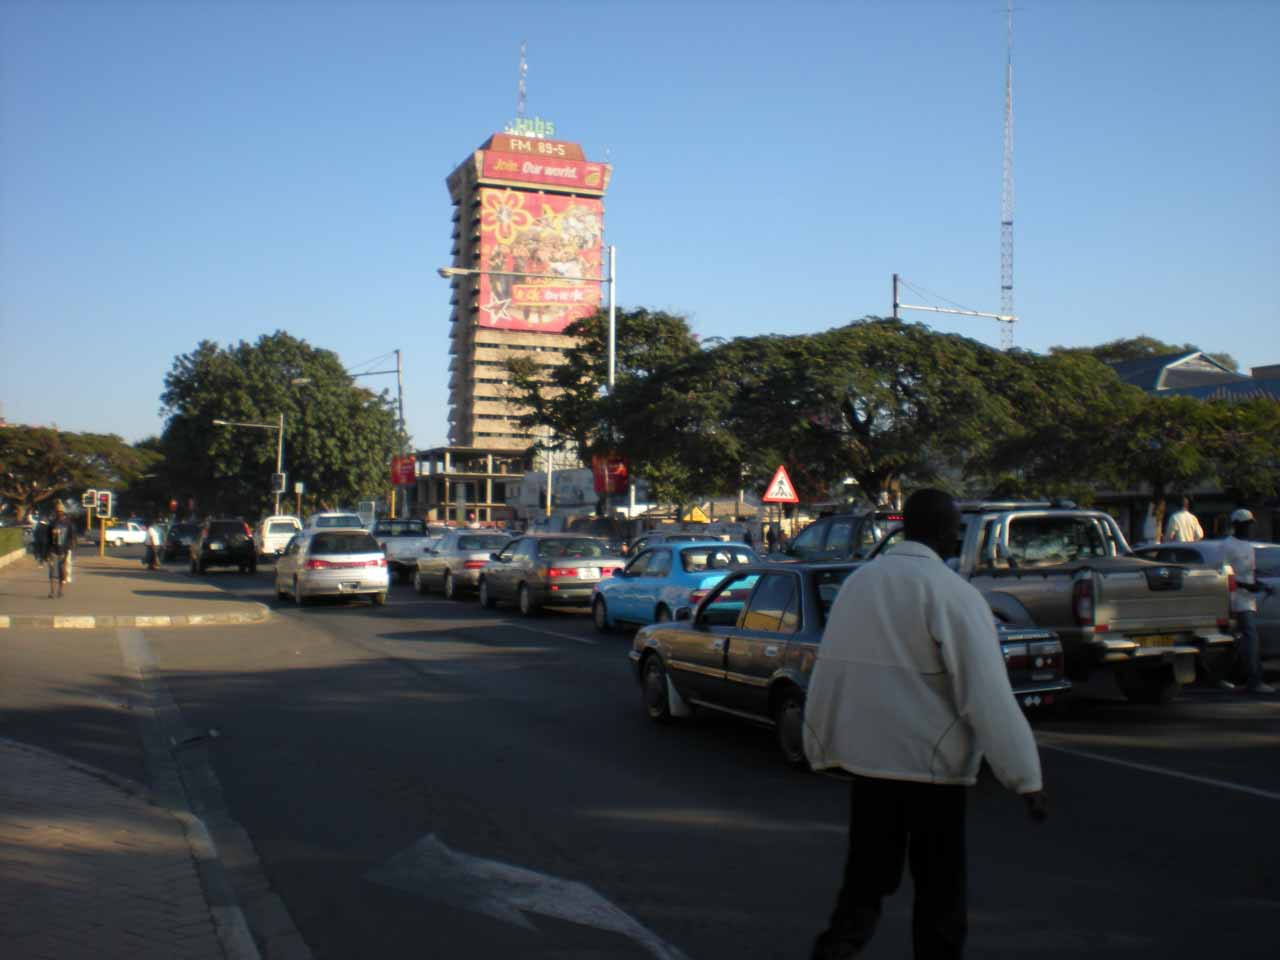 Within the traffic of Lusaka